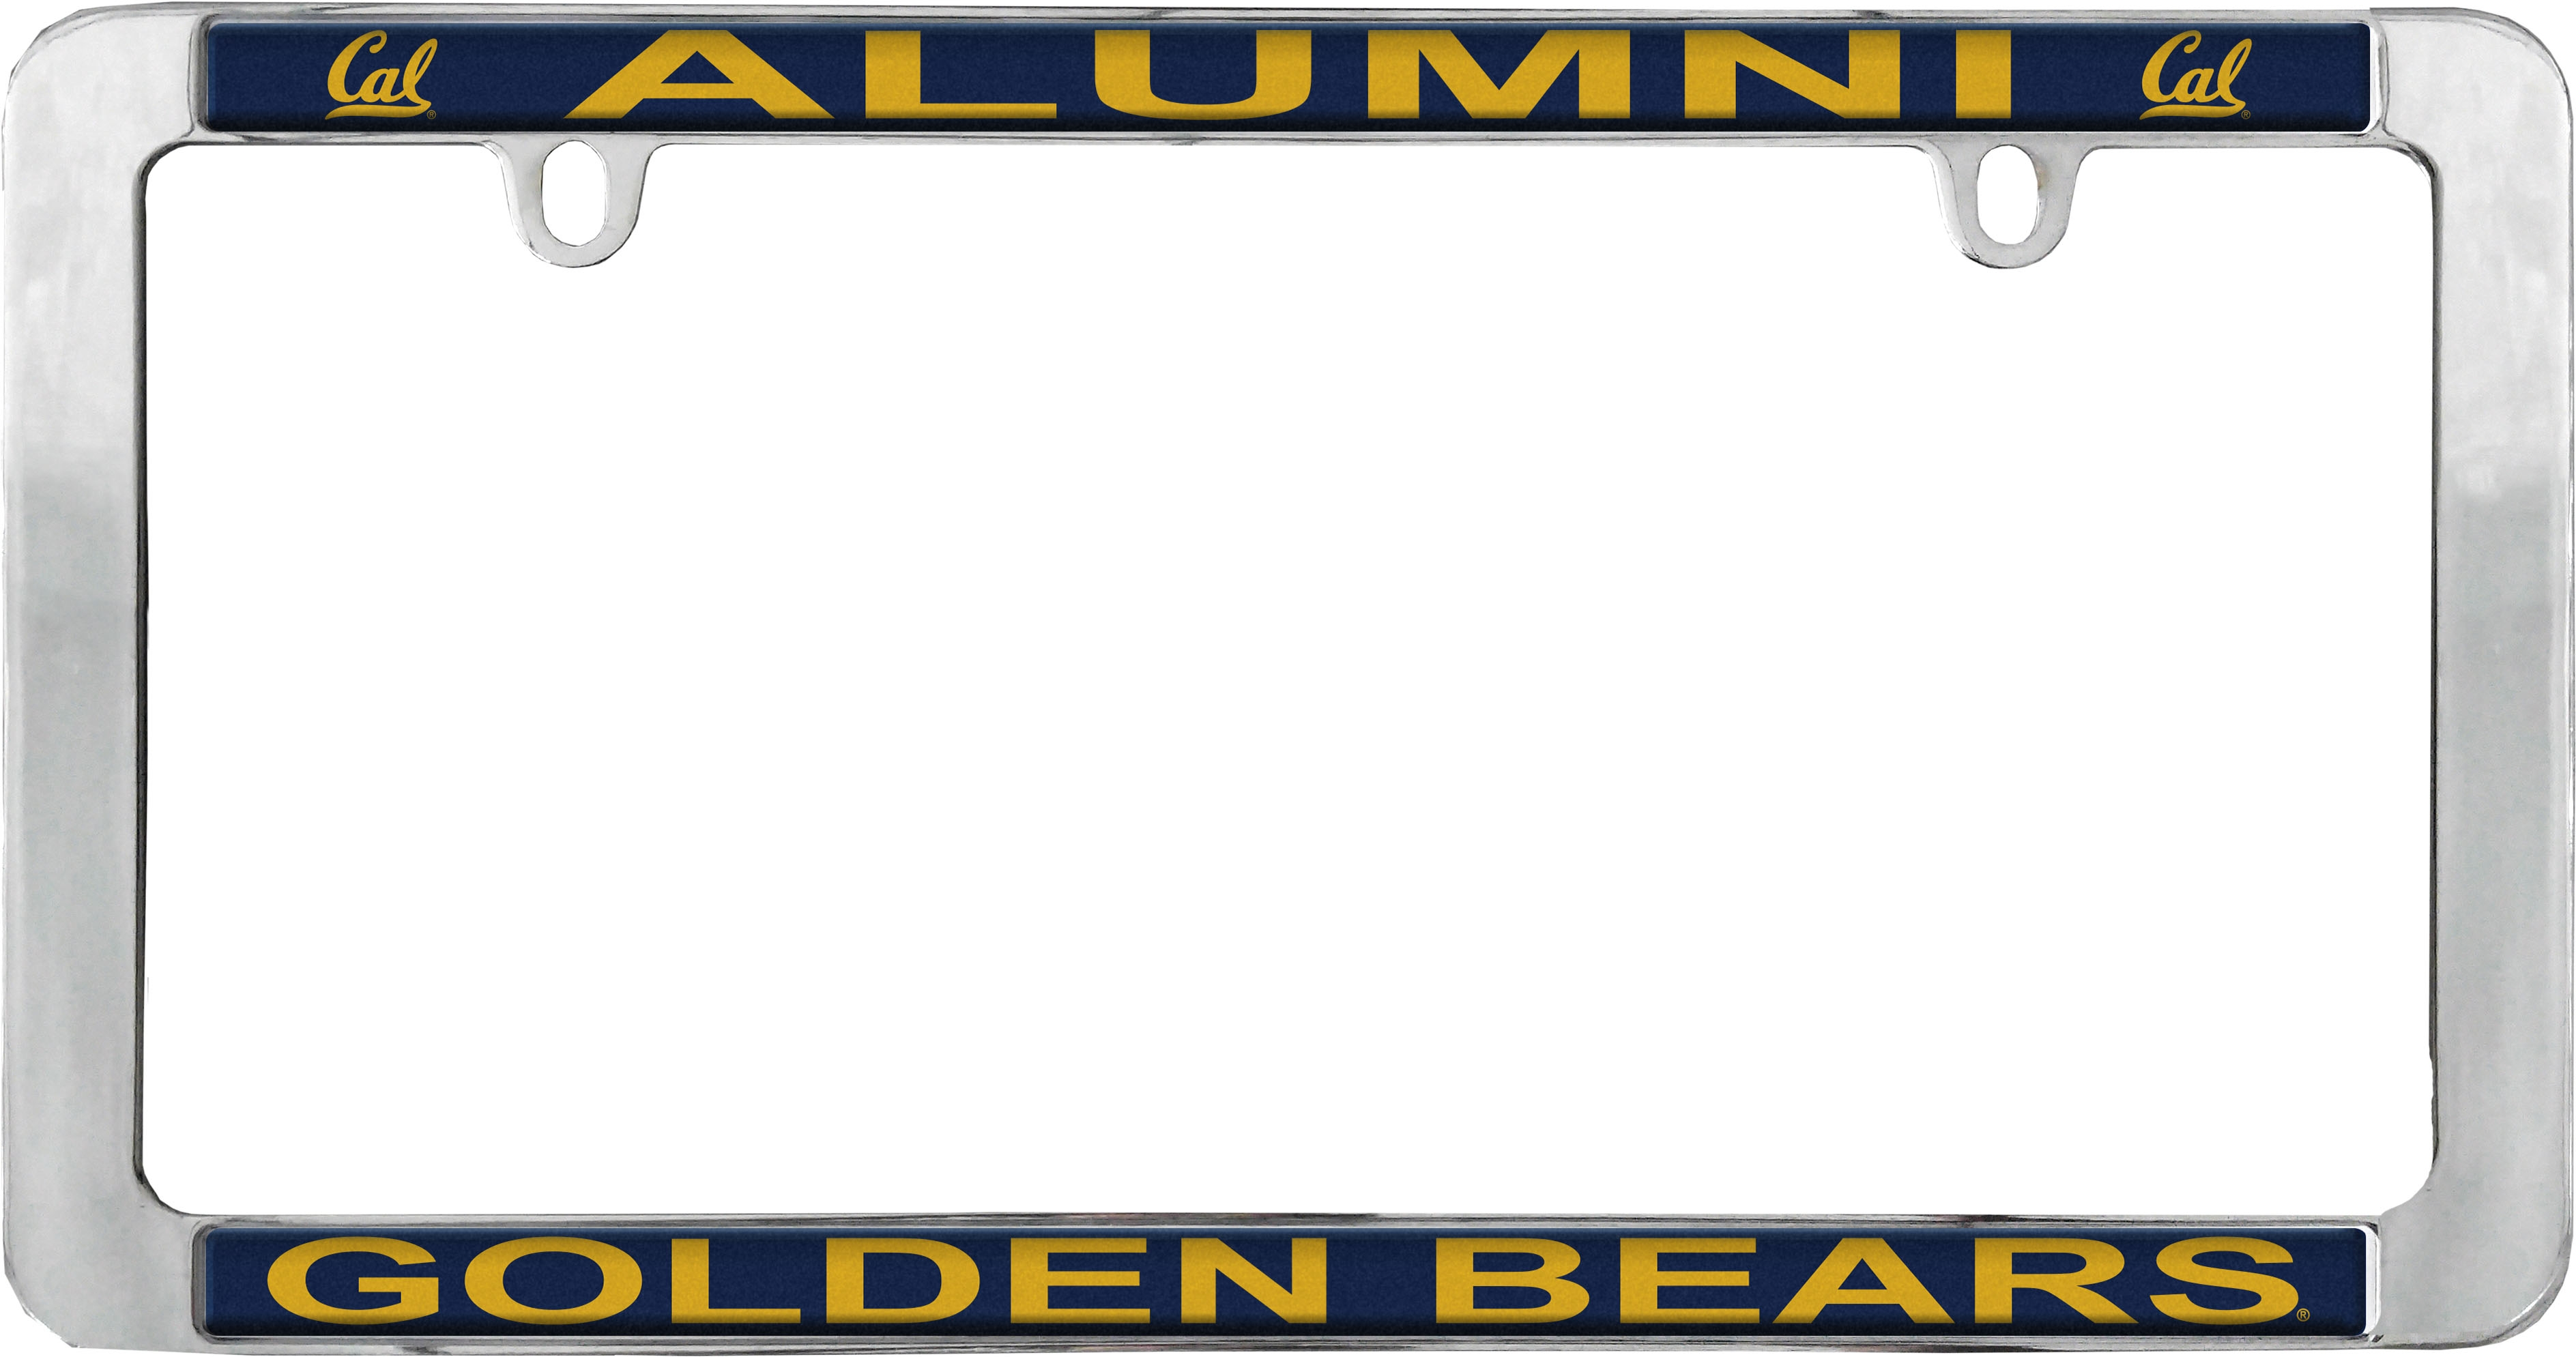 University of California Berkeley License Plate Frame Alumni